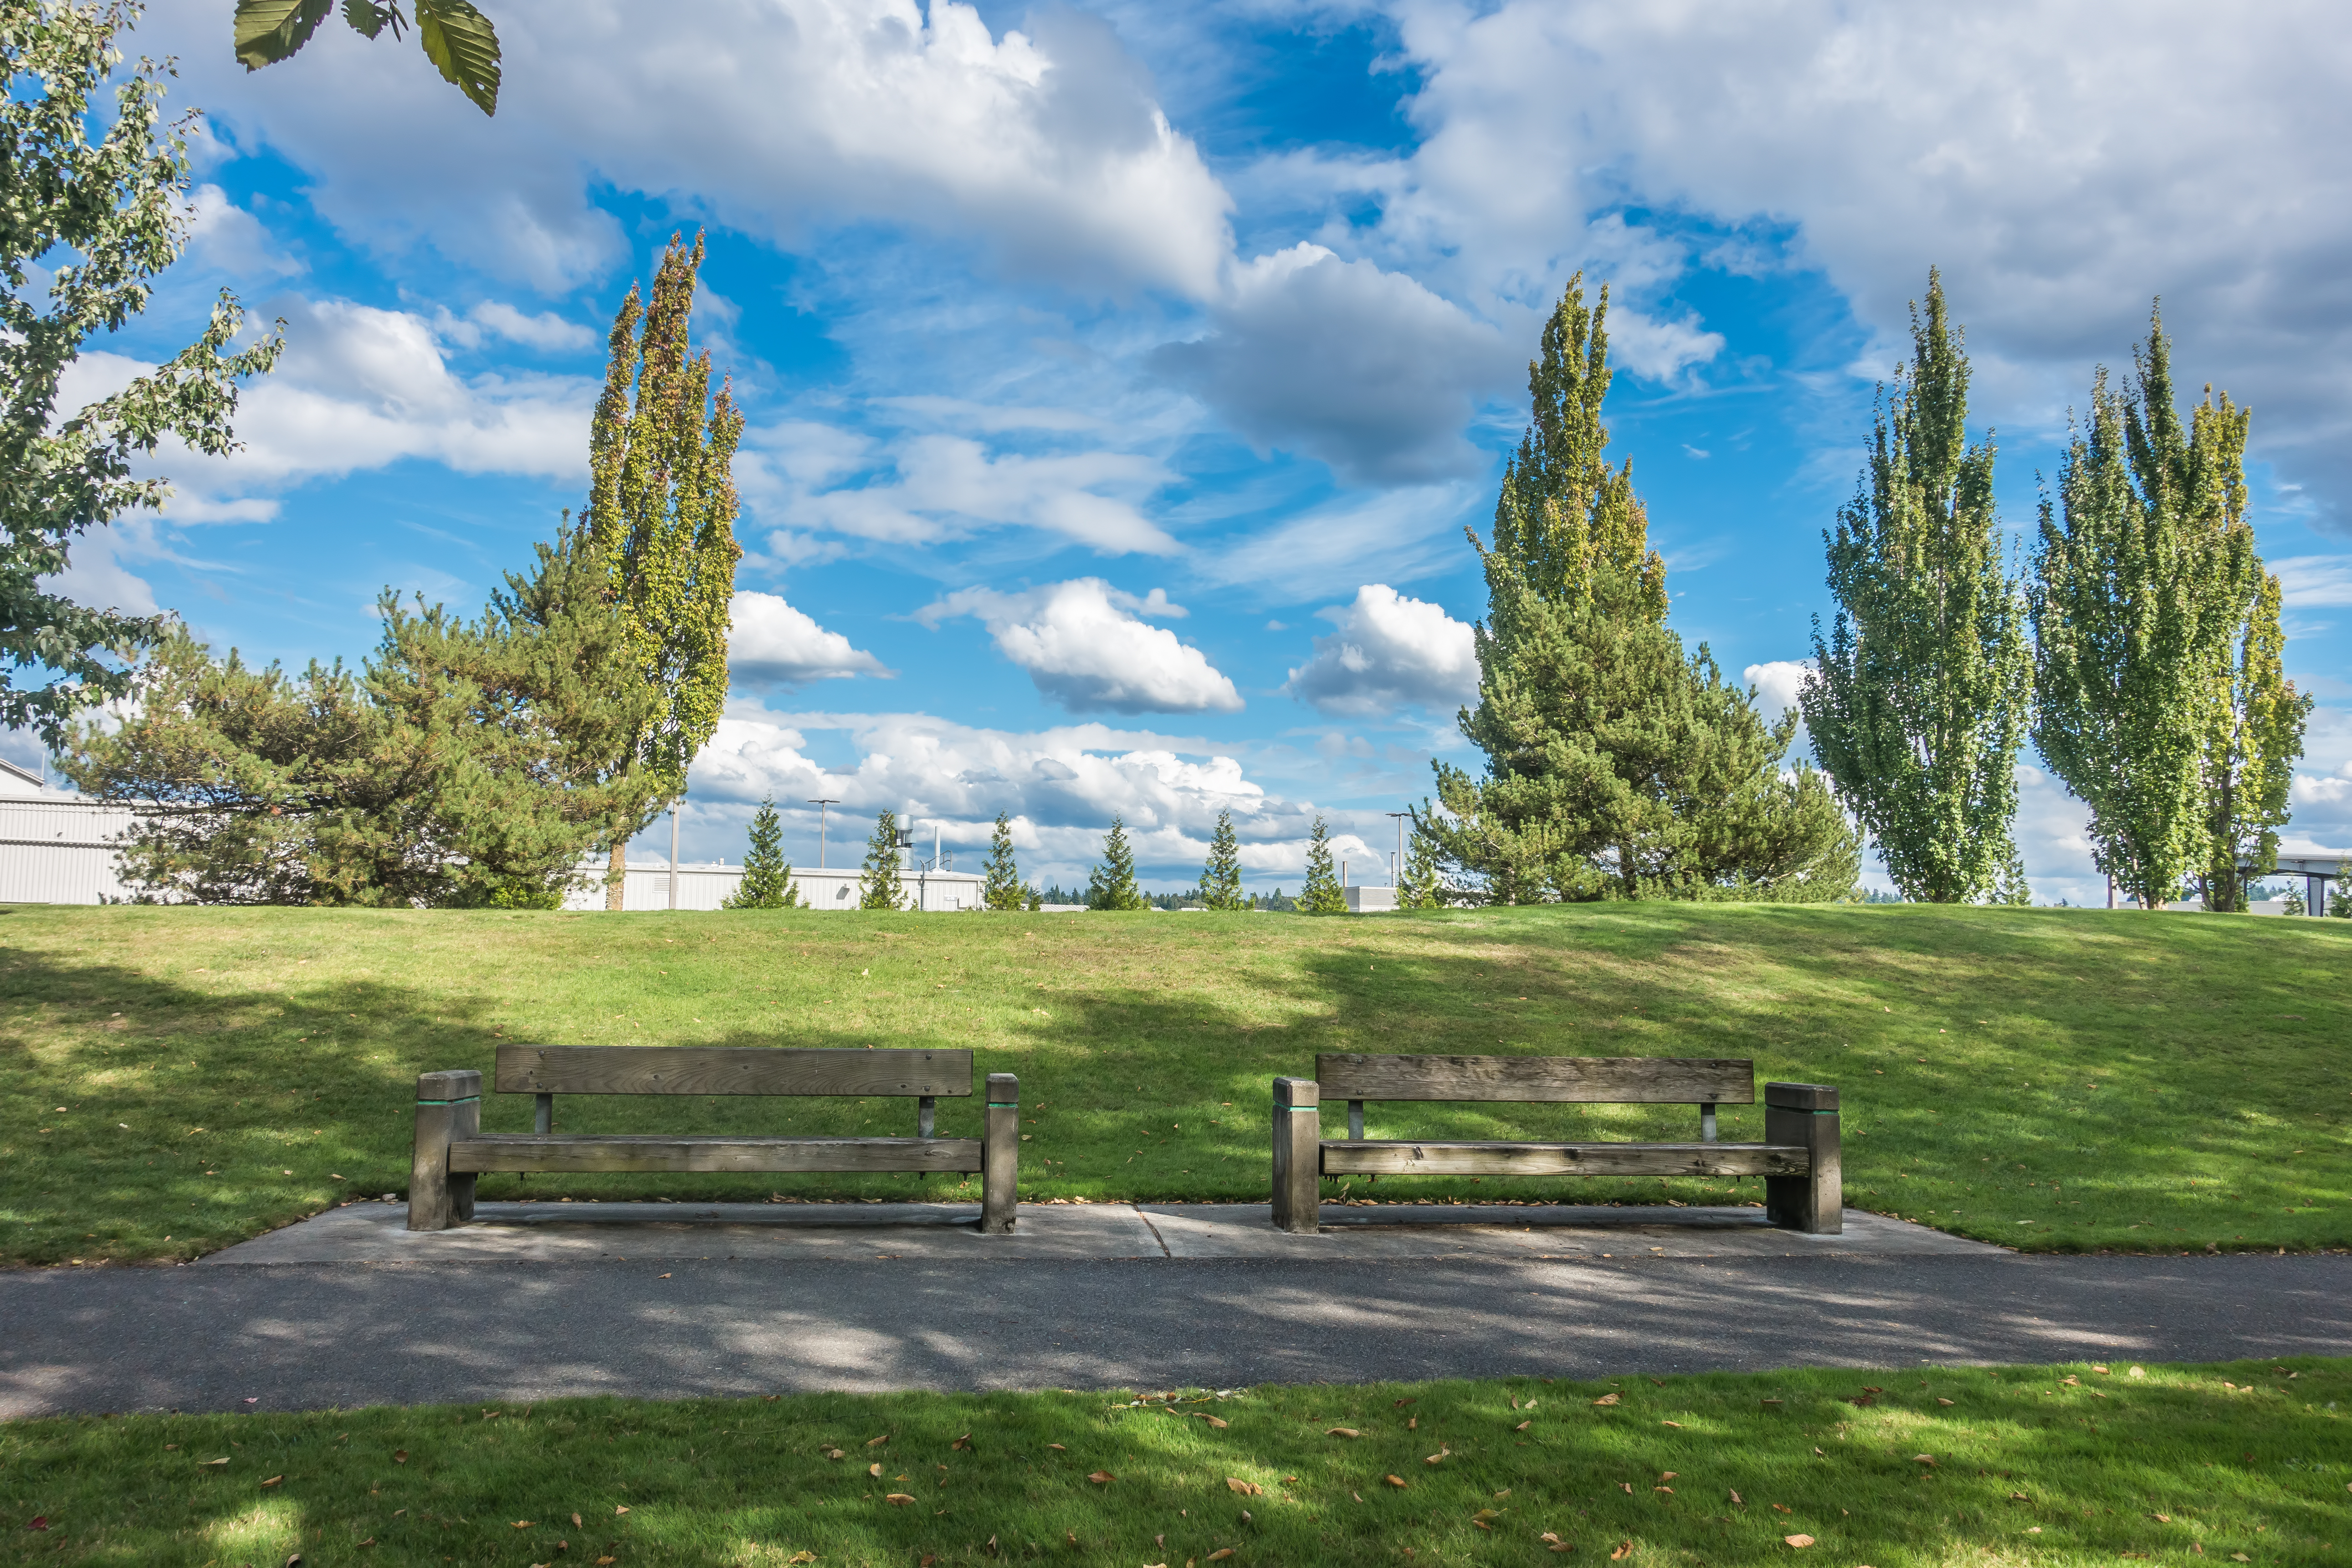 A bench along a paved trail, with a grassy lawn and trees in the background.